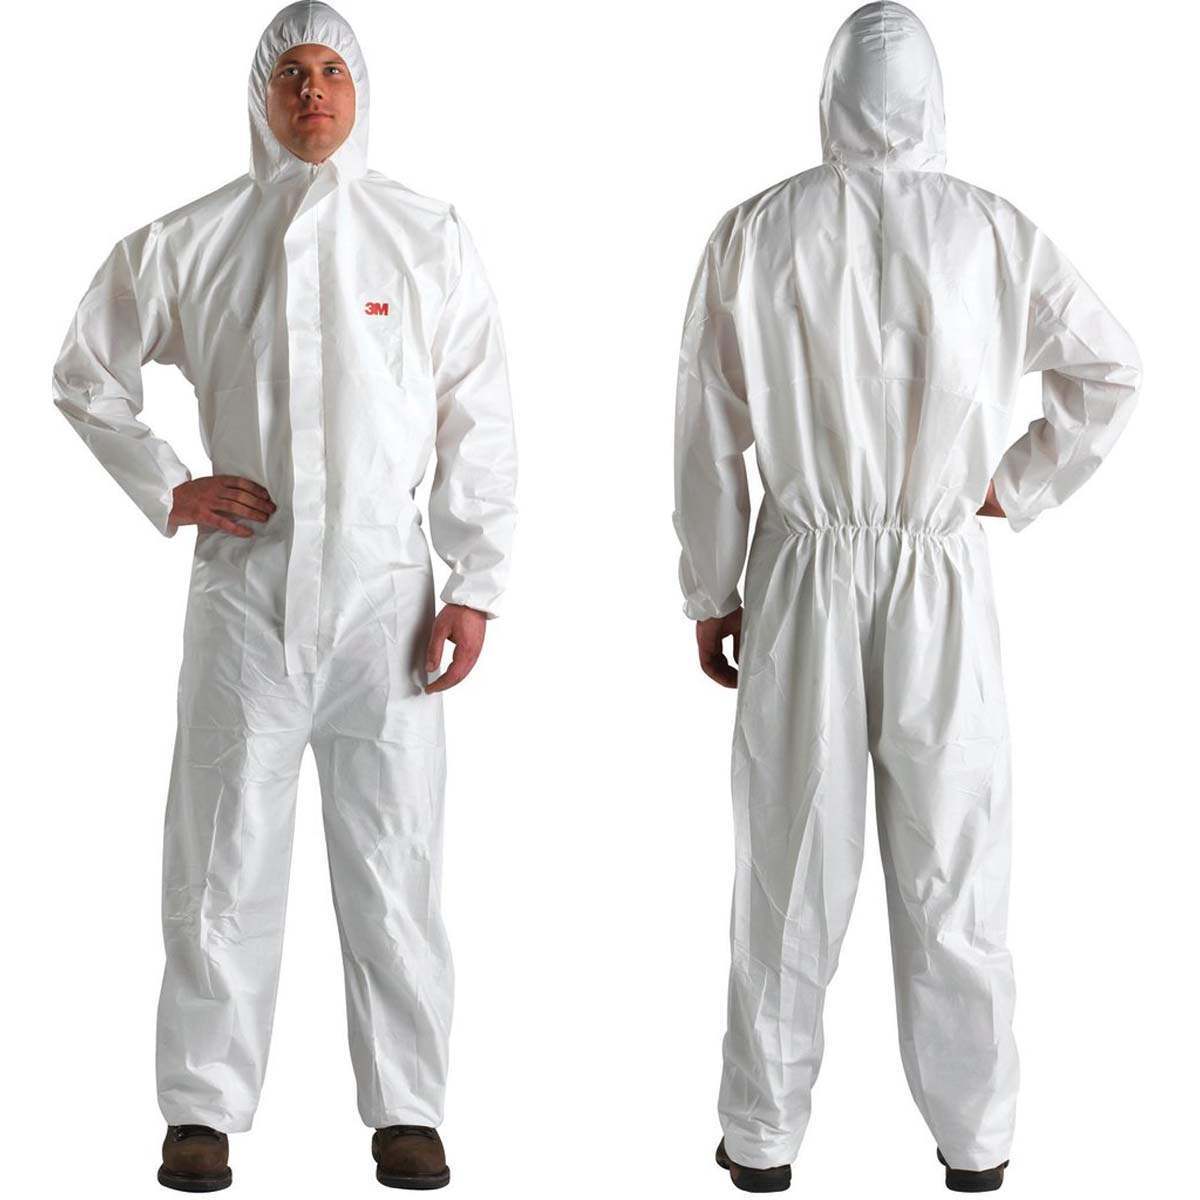 """3Mâ""""¢ Disposable Protective Coverall Safety Work Wear 4510-XL/00584(AAD) 1/Bag, 20 Ba"""